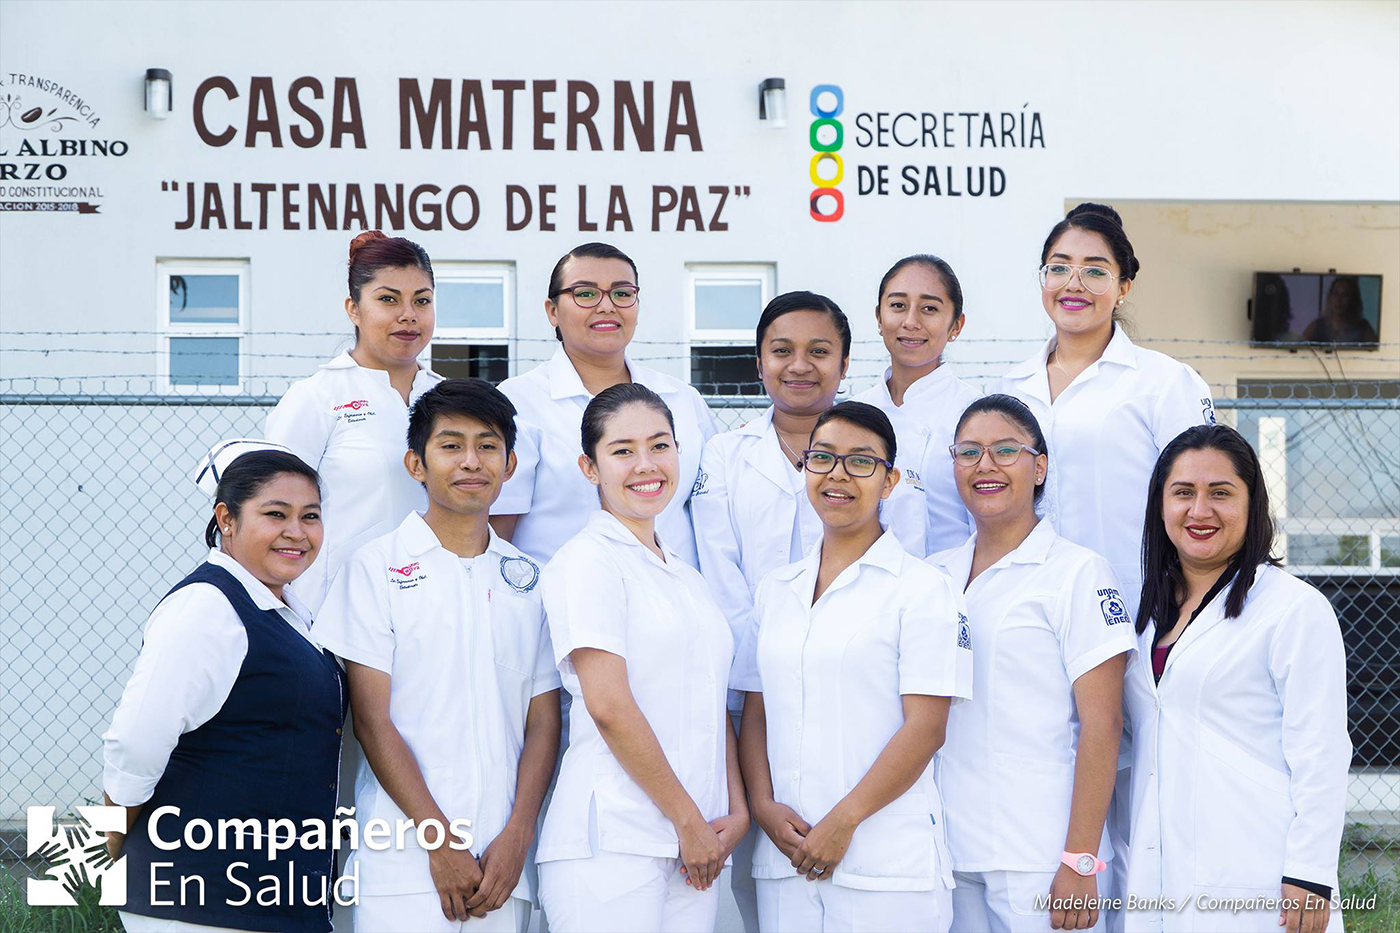 This August, we welcomed the 3rd generation of nursing and obstetrics interns who will carry out their year of social service with Compañeros En Salud. We are proud to have them with us as we strengthen the obstetrics service offered at the Casa Materna and the community hospital in Jaltenango de la Paz. Thanks to this collaboration with the hospital, we're able to provide safe, respectful and quality care.   In the top row, from left to right: Ittzell Merari Portillo Nuñez, Hilda Maria Vivanco Robles, Fabiola Ortiz (clinical supervisor), Melania Muñoz Ramírez (general nurse), Alma Nayelli Hernández Martínez    In the front row, from left to right: Jazmín Gómez Aguilar (Head of Nursing), Oscar Mejía Hernández, Edith Jazmin Rojas Bautista, Alhelí Susana Sánchez Bello, Daniela Carrasco Chávez and Dr. Dania Citlali Molina Palacios (Director of the community hospital in Jaltenango de la Paz)